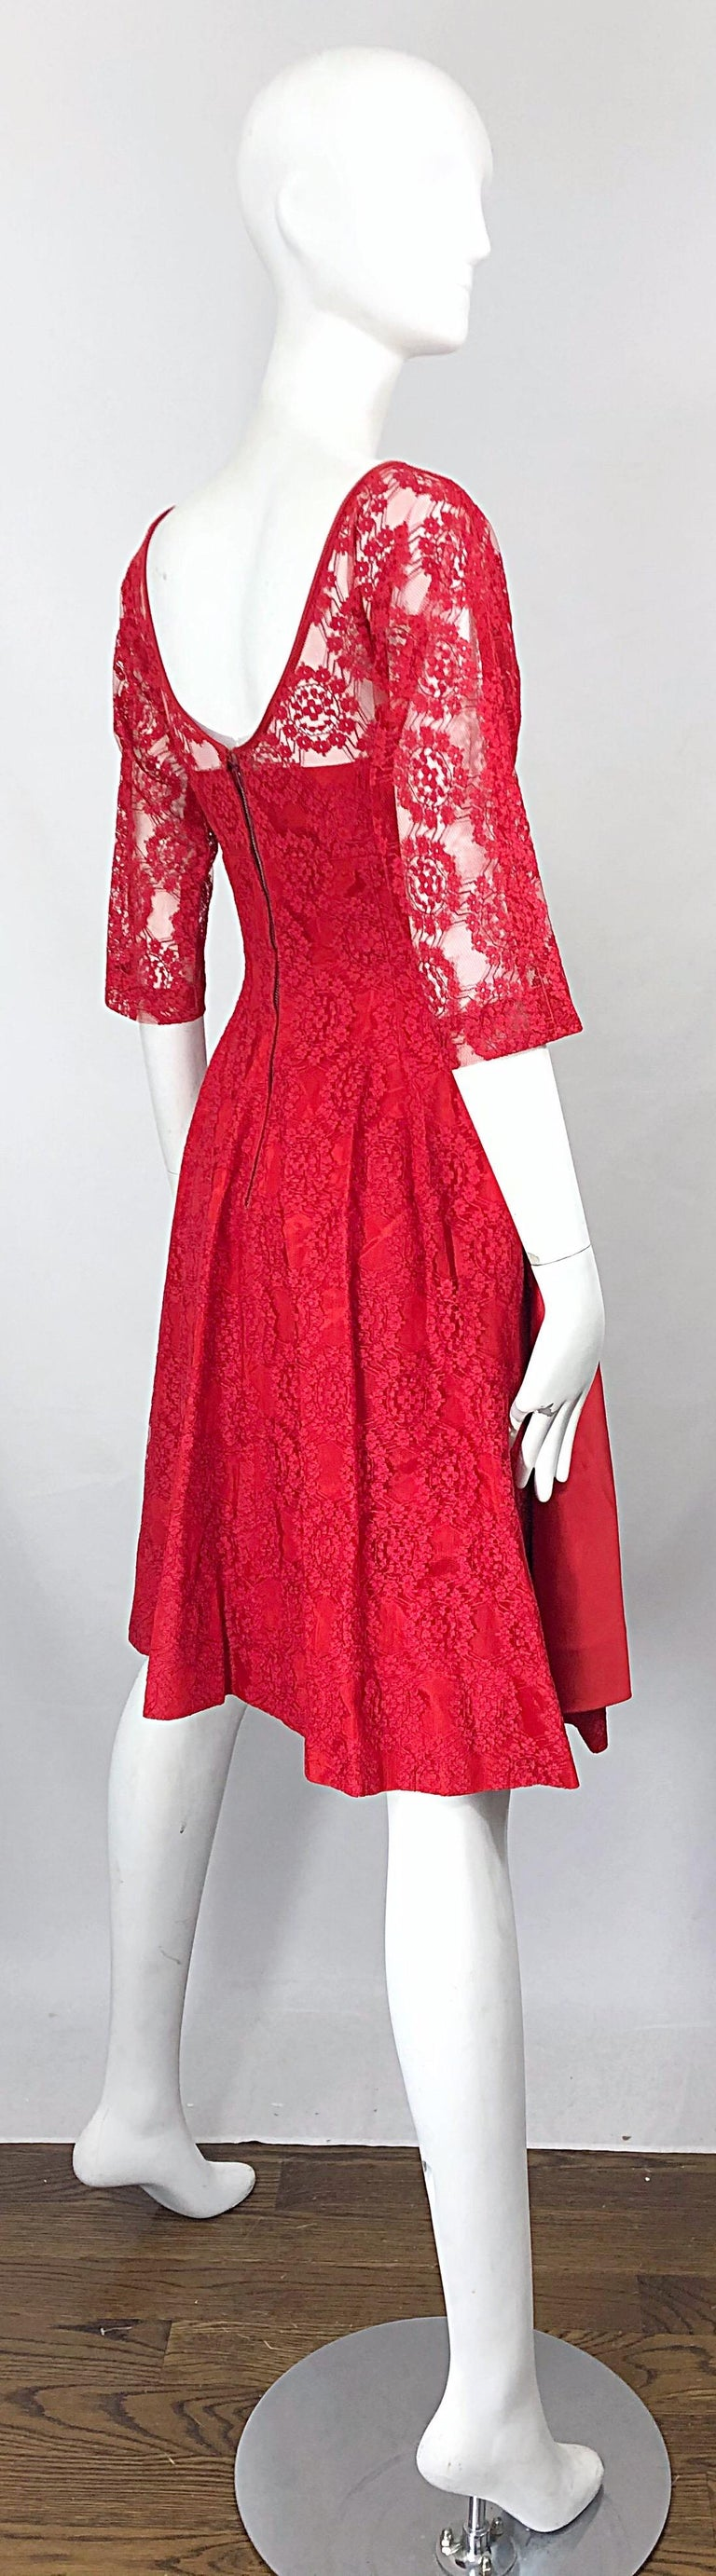 1950s Demi Couture Lips Stick Red Silk Lace 3/4 Sleeve Vintage 50s Dress For Sale 3